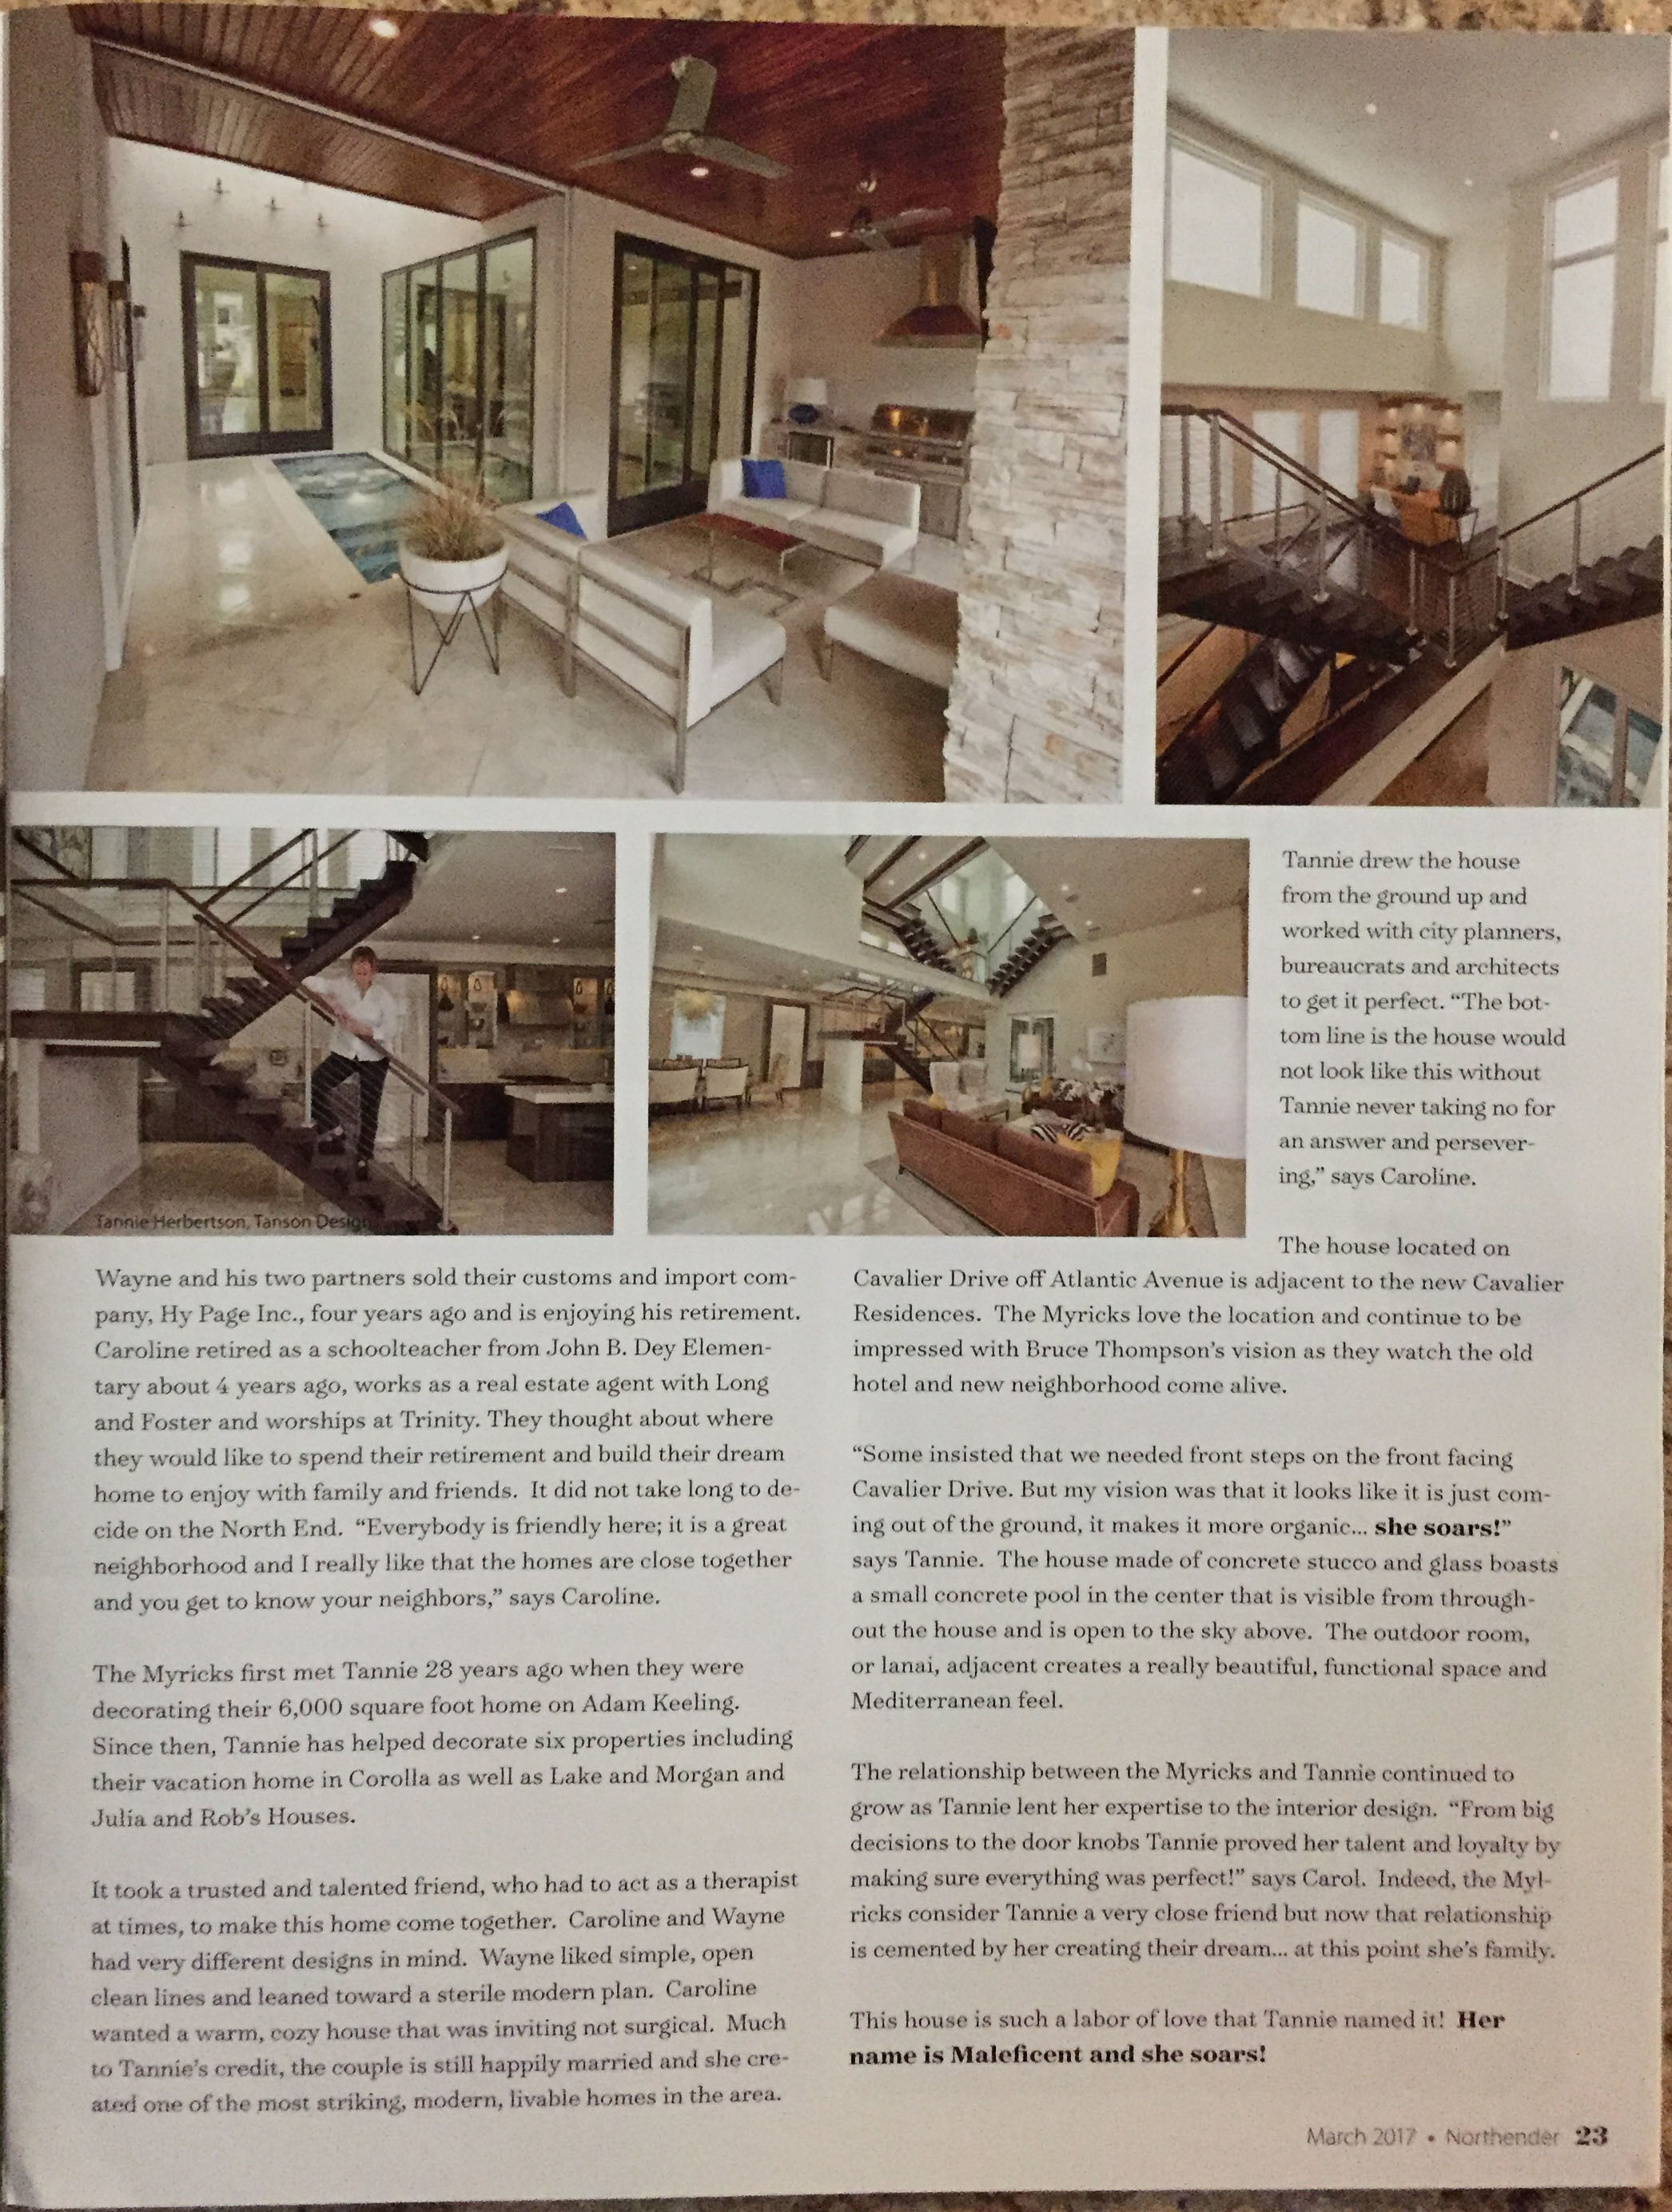 Northender Magazine Image - inside right